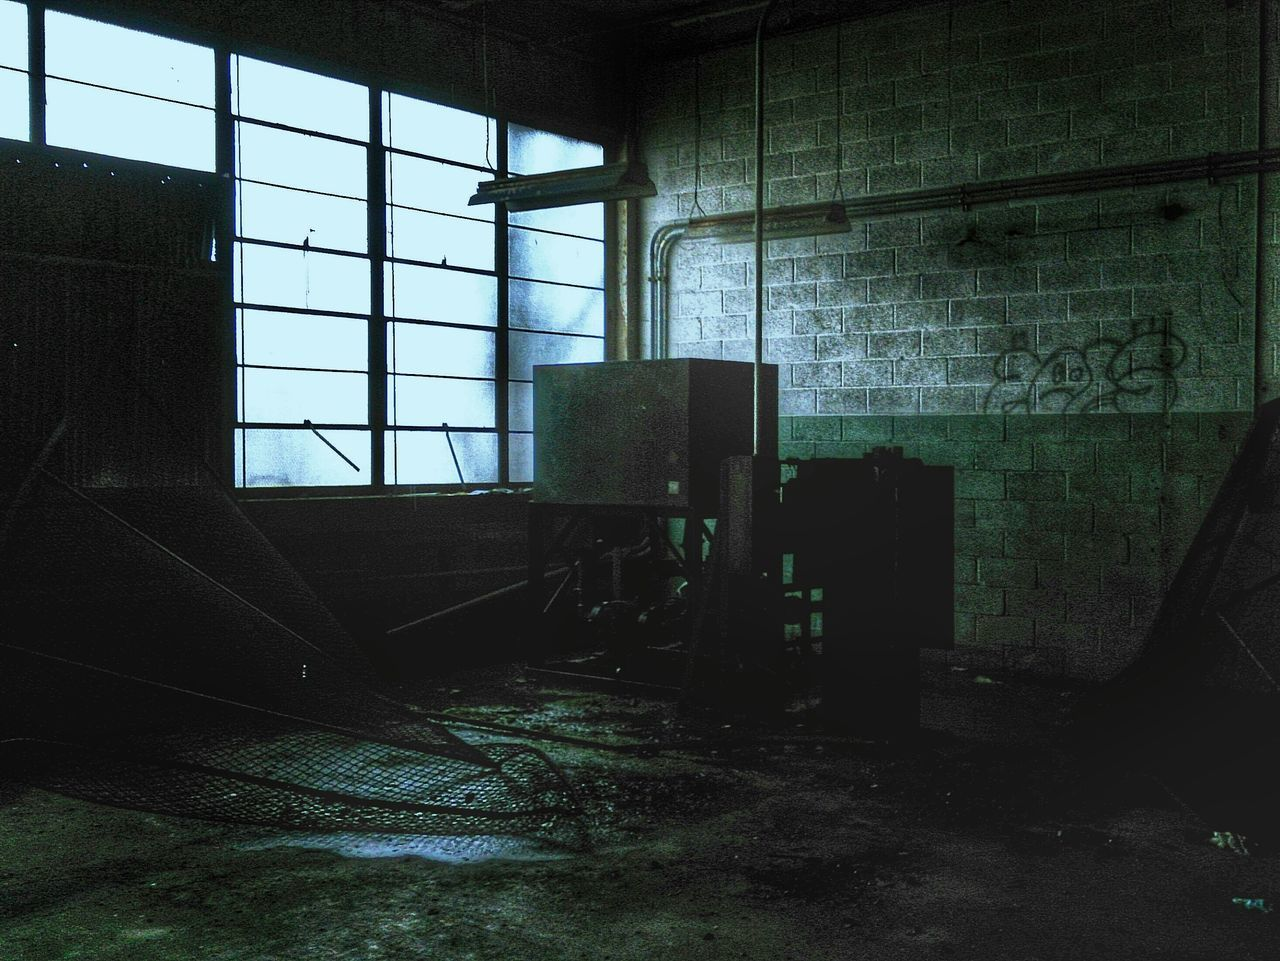 window, abandoned, indoors, architecture, built structure, damaged, destruction, no people, day